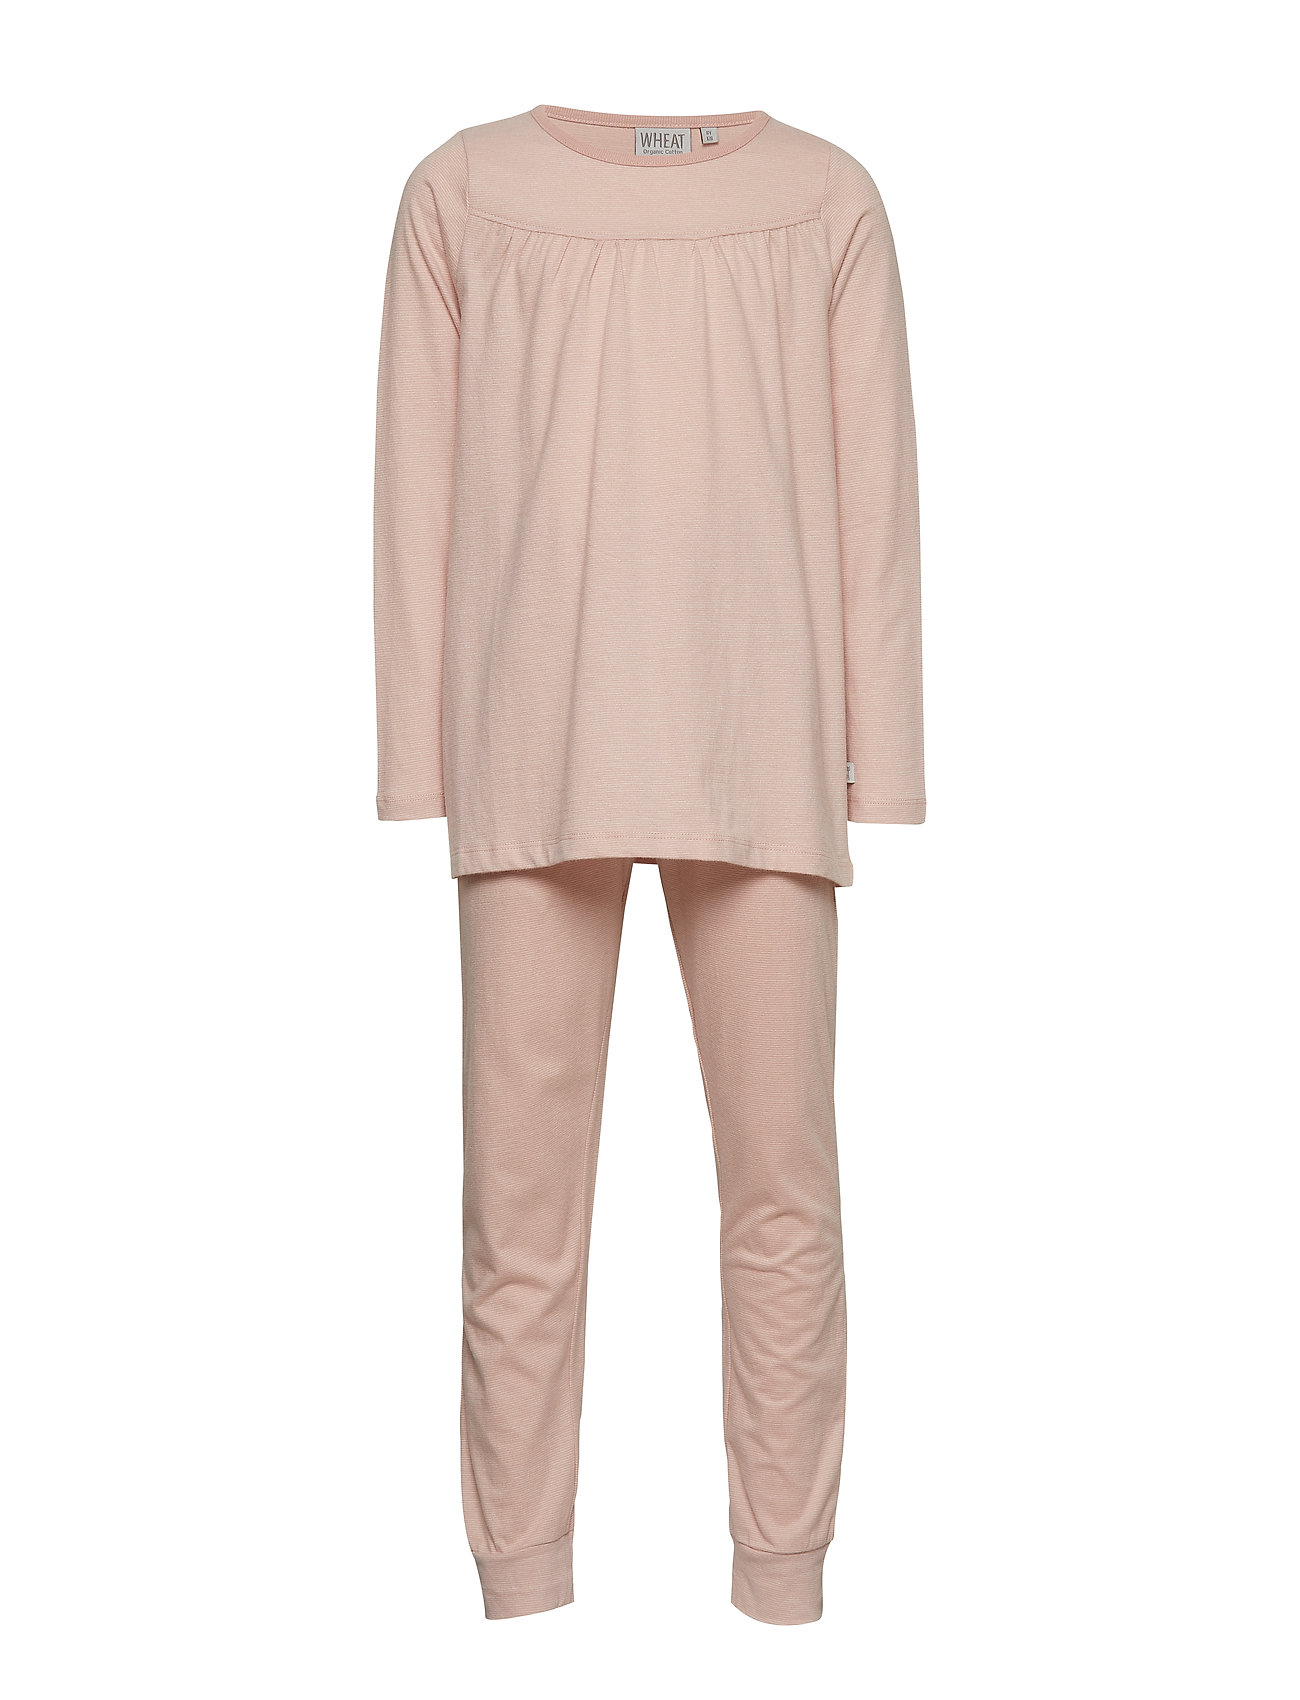 Wheat Pajamas Yoke LS - DARK ROSE